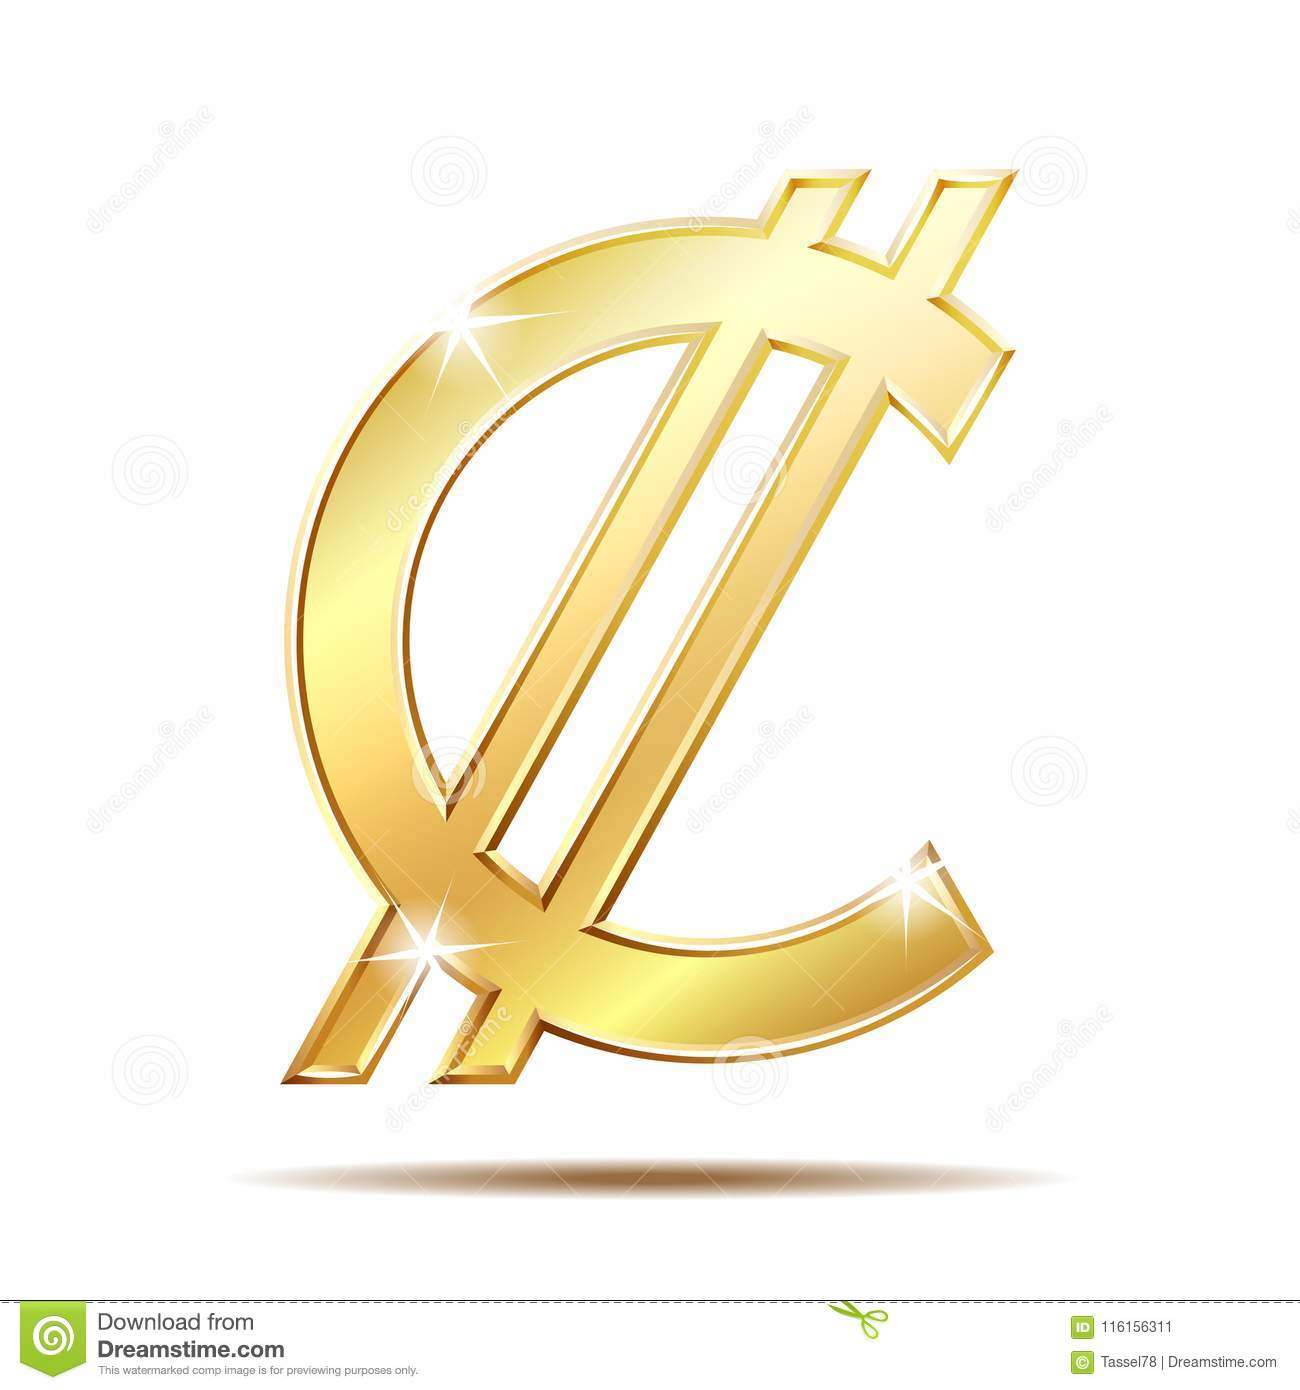 Costa Rican And Salvadoran Colon Currency Symbol Stock Vector